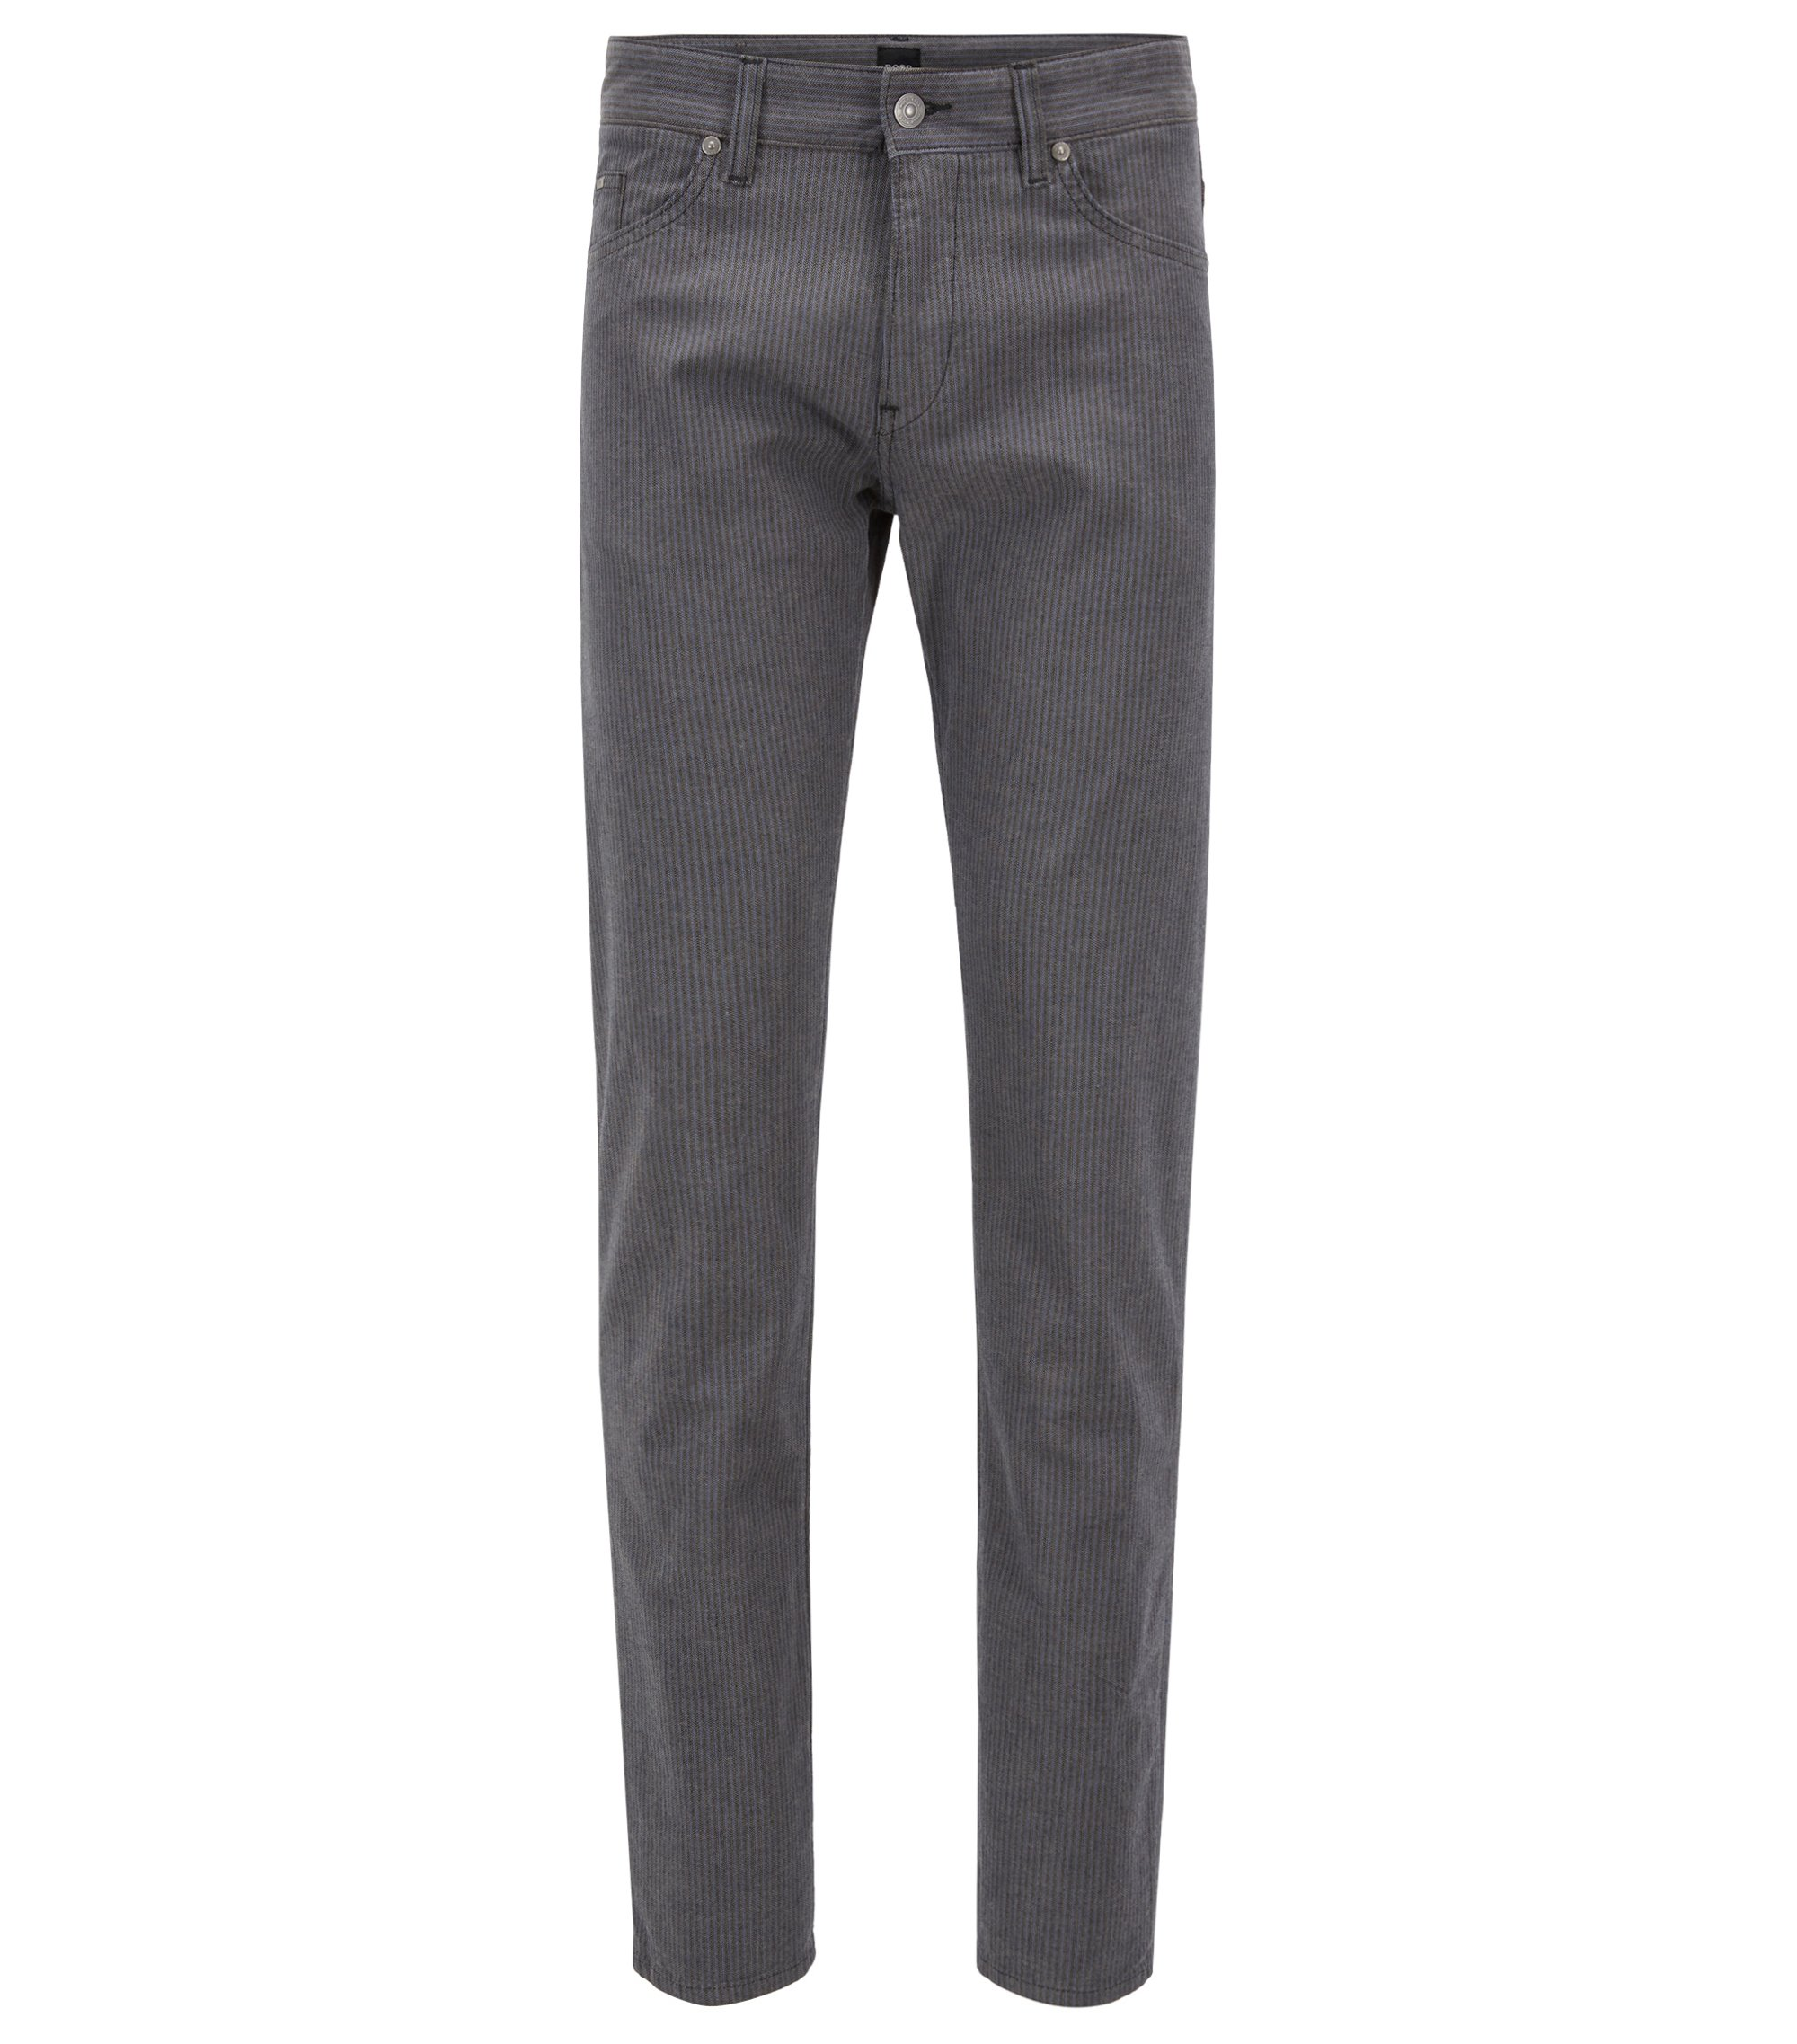 Slim-fit jeans in brushed stretch-cotton herringbone, Grey